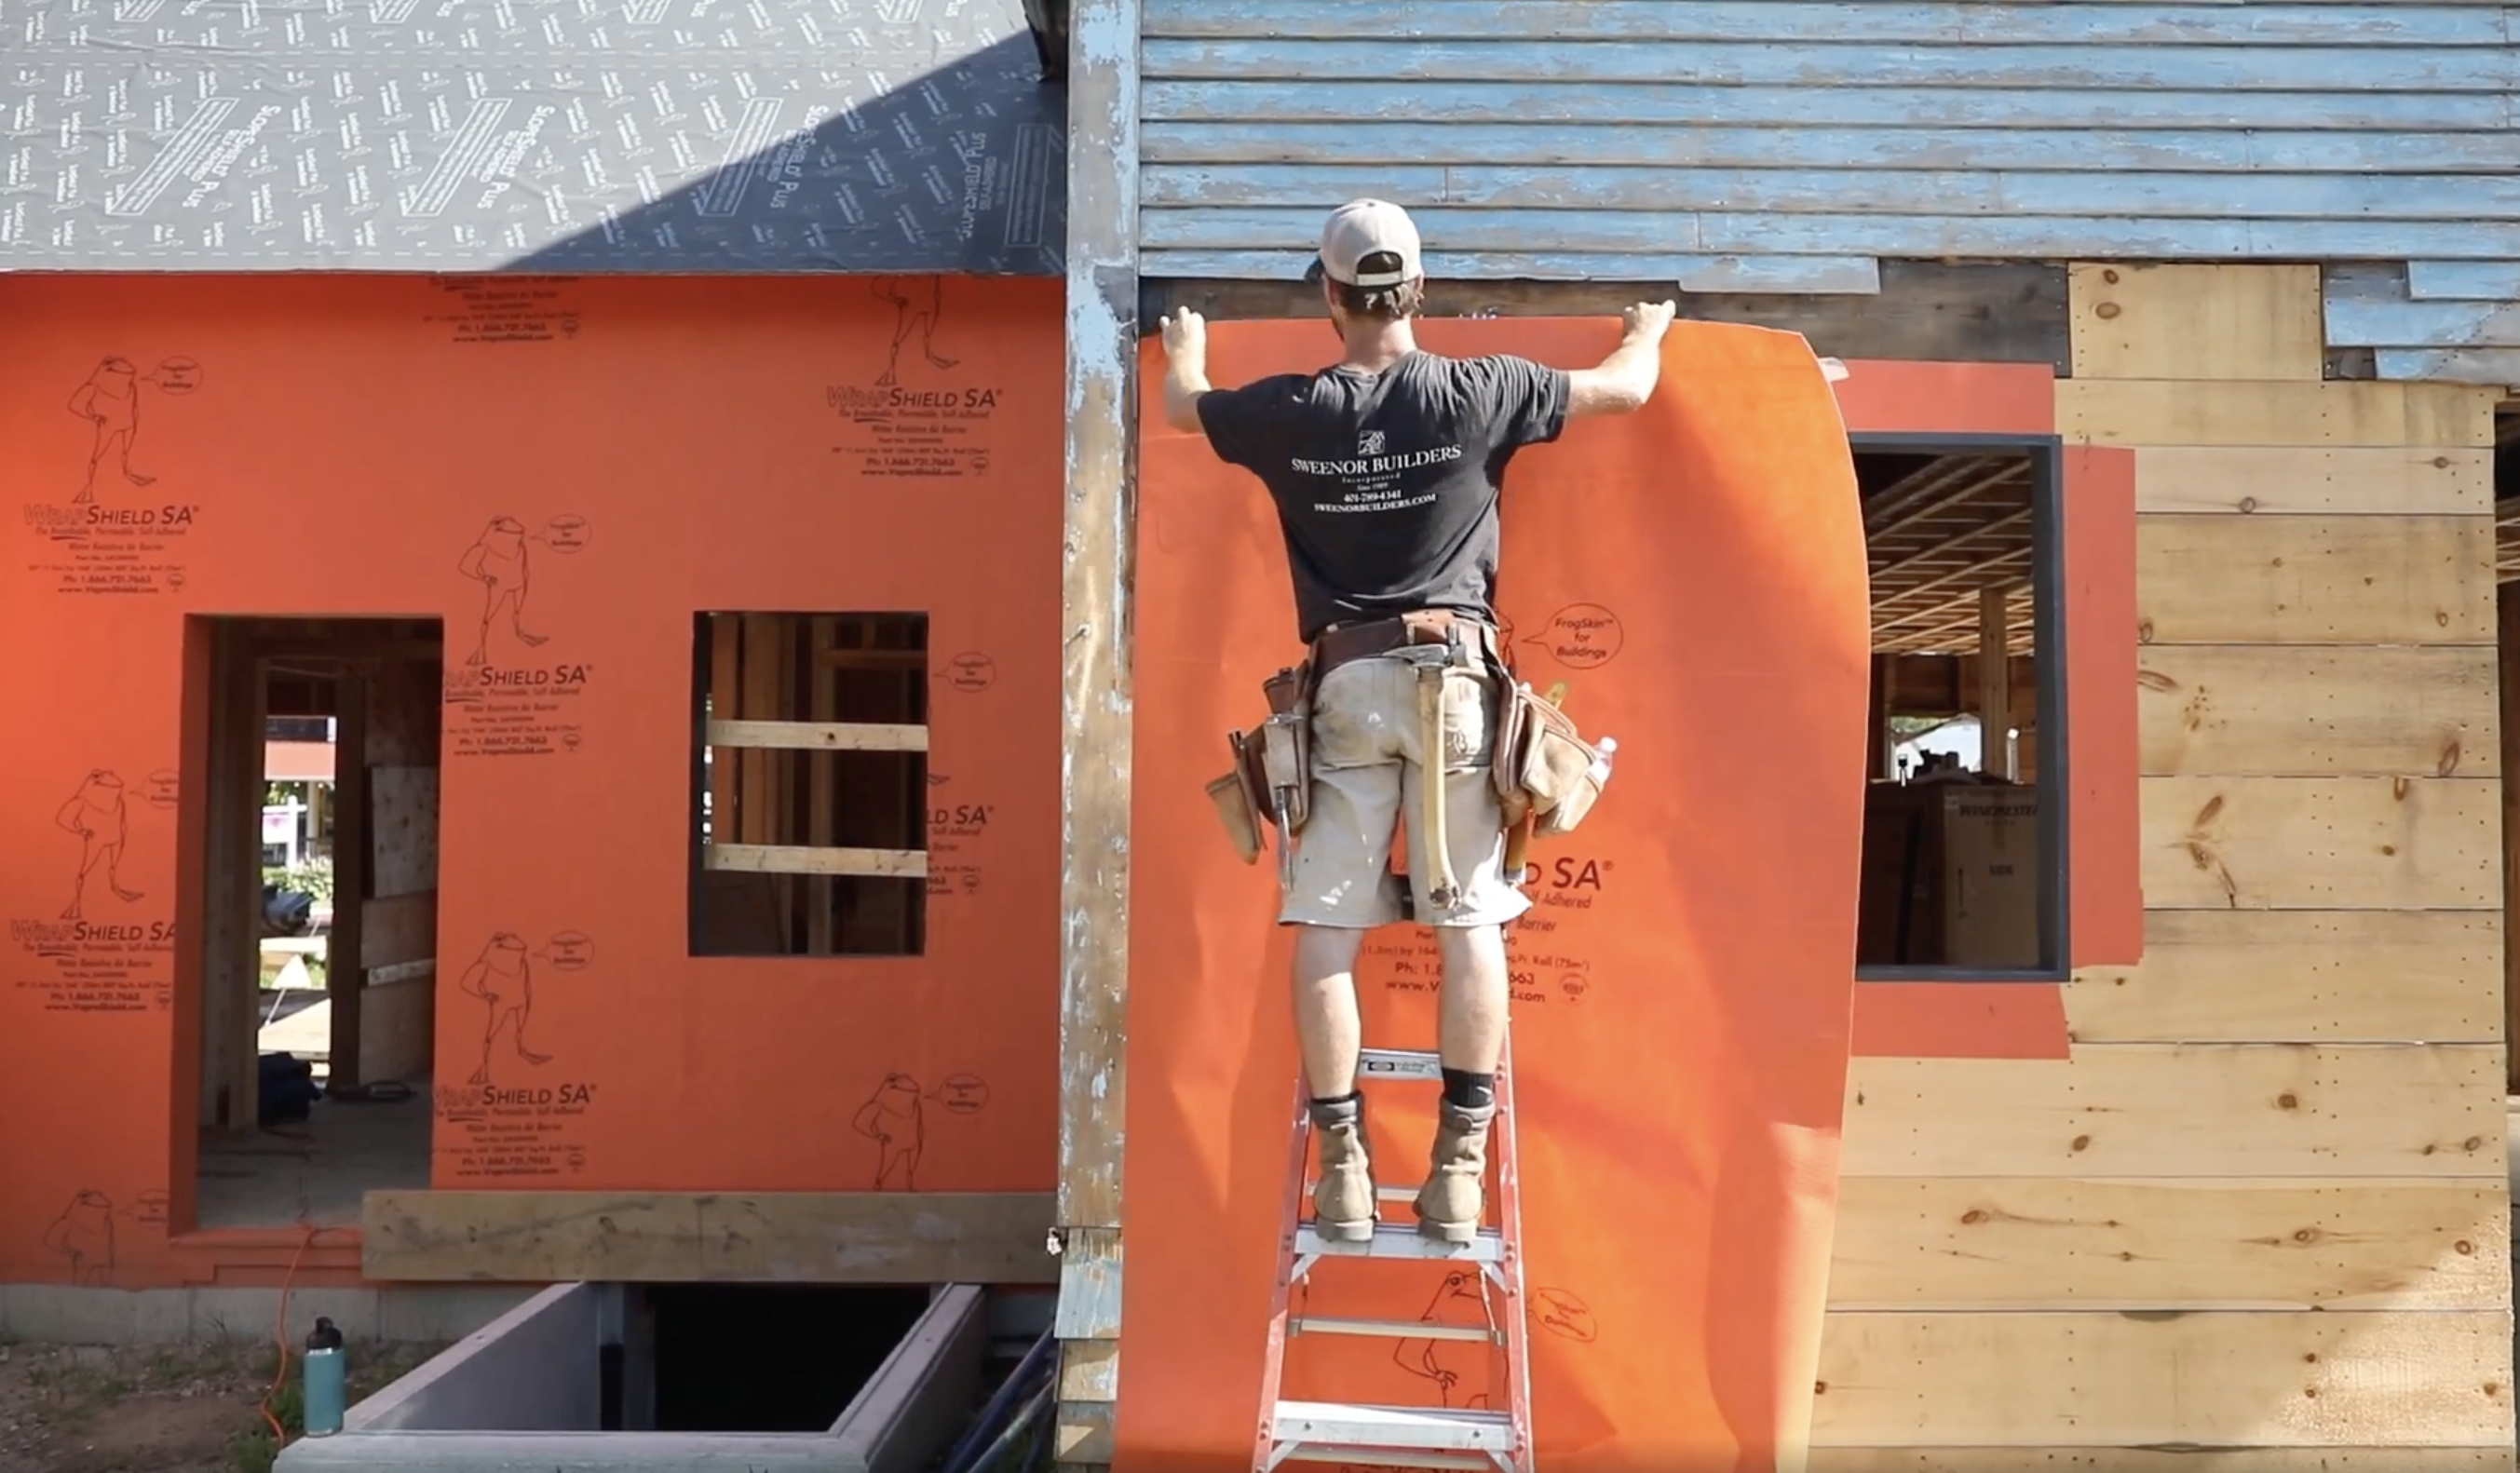 Installing water-resistant air barrier system during siding installation.